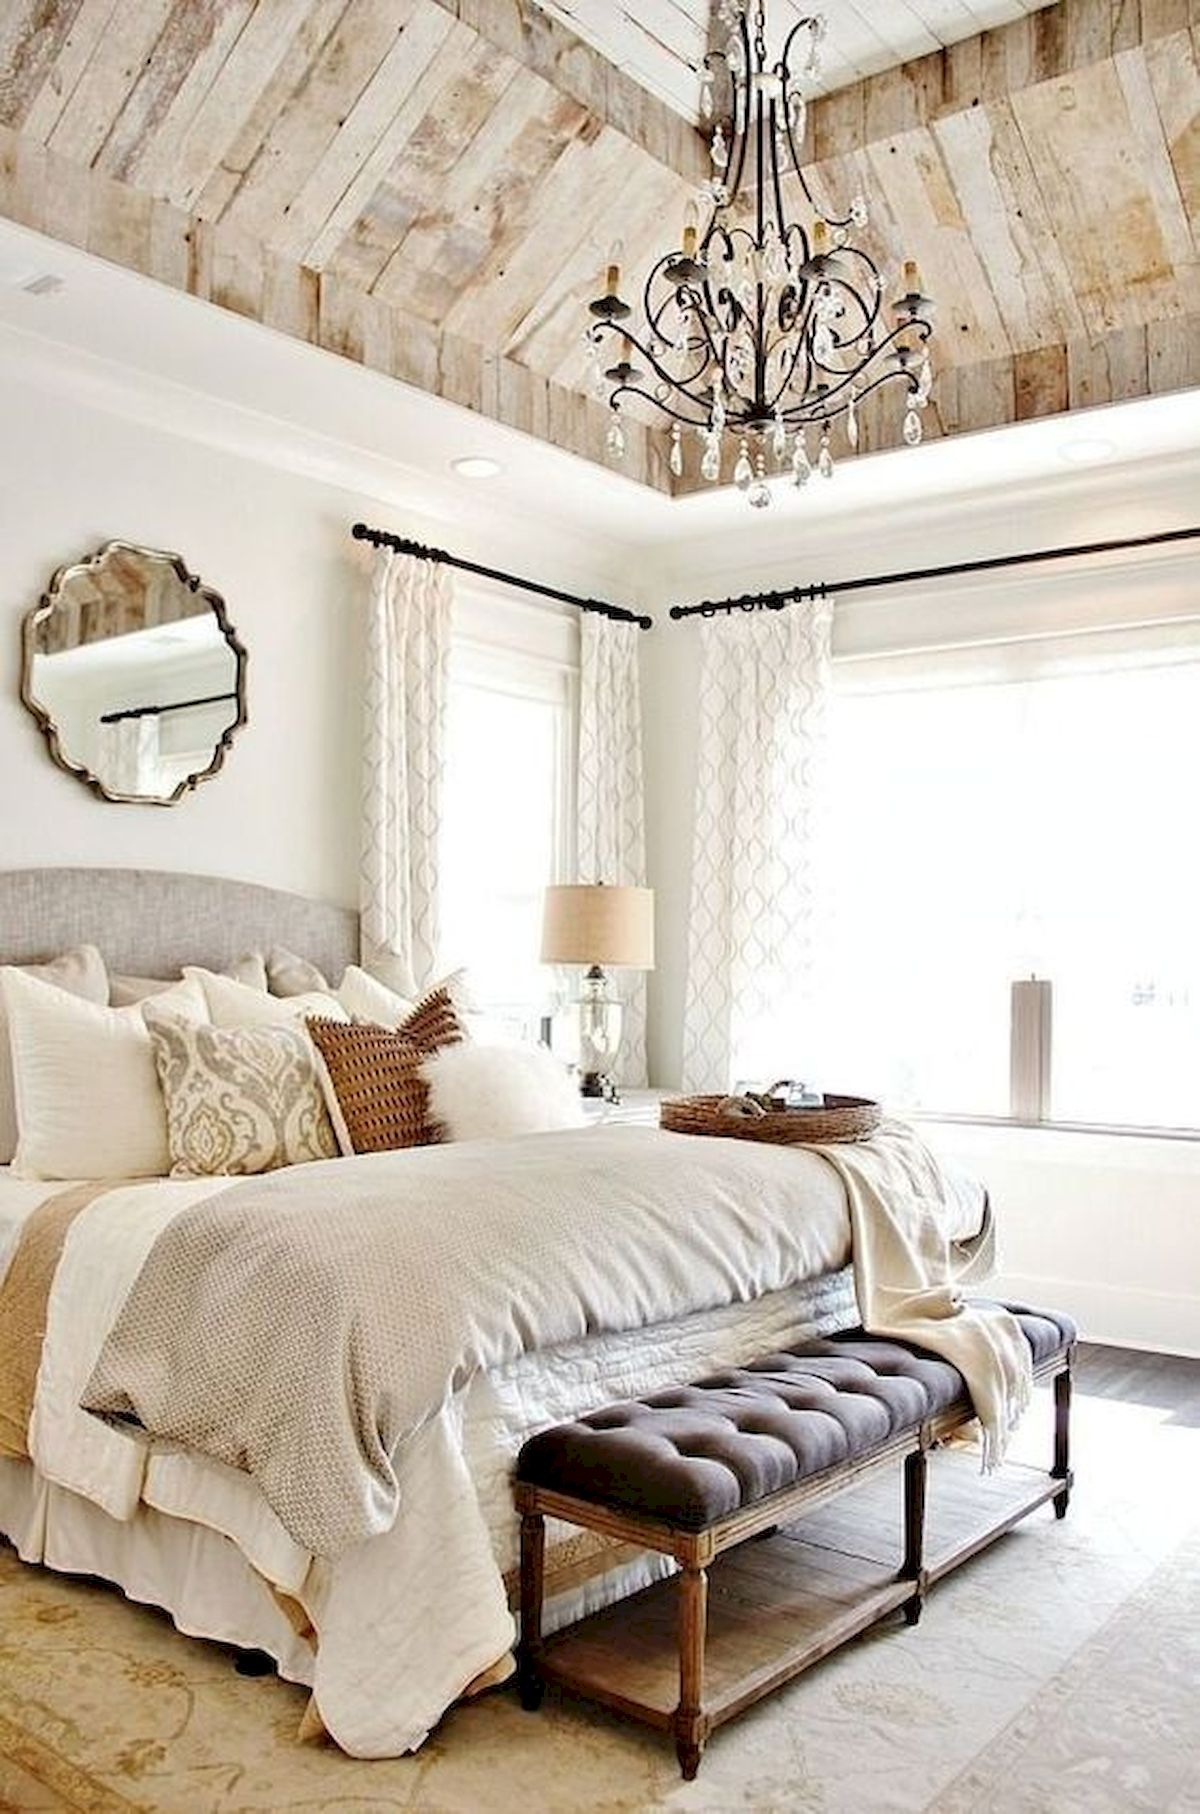 40 Incredible Modern Bedroom Design Ideas That Will Be Relax Place (16)